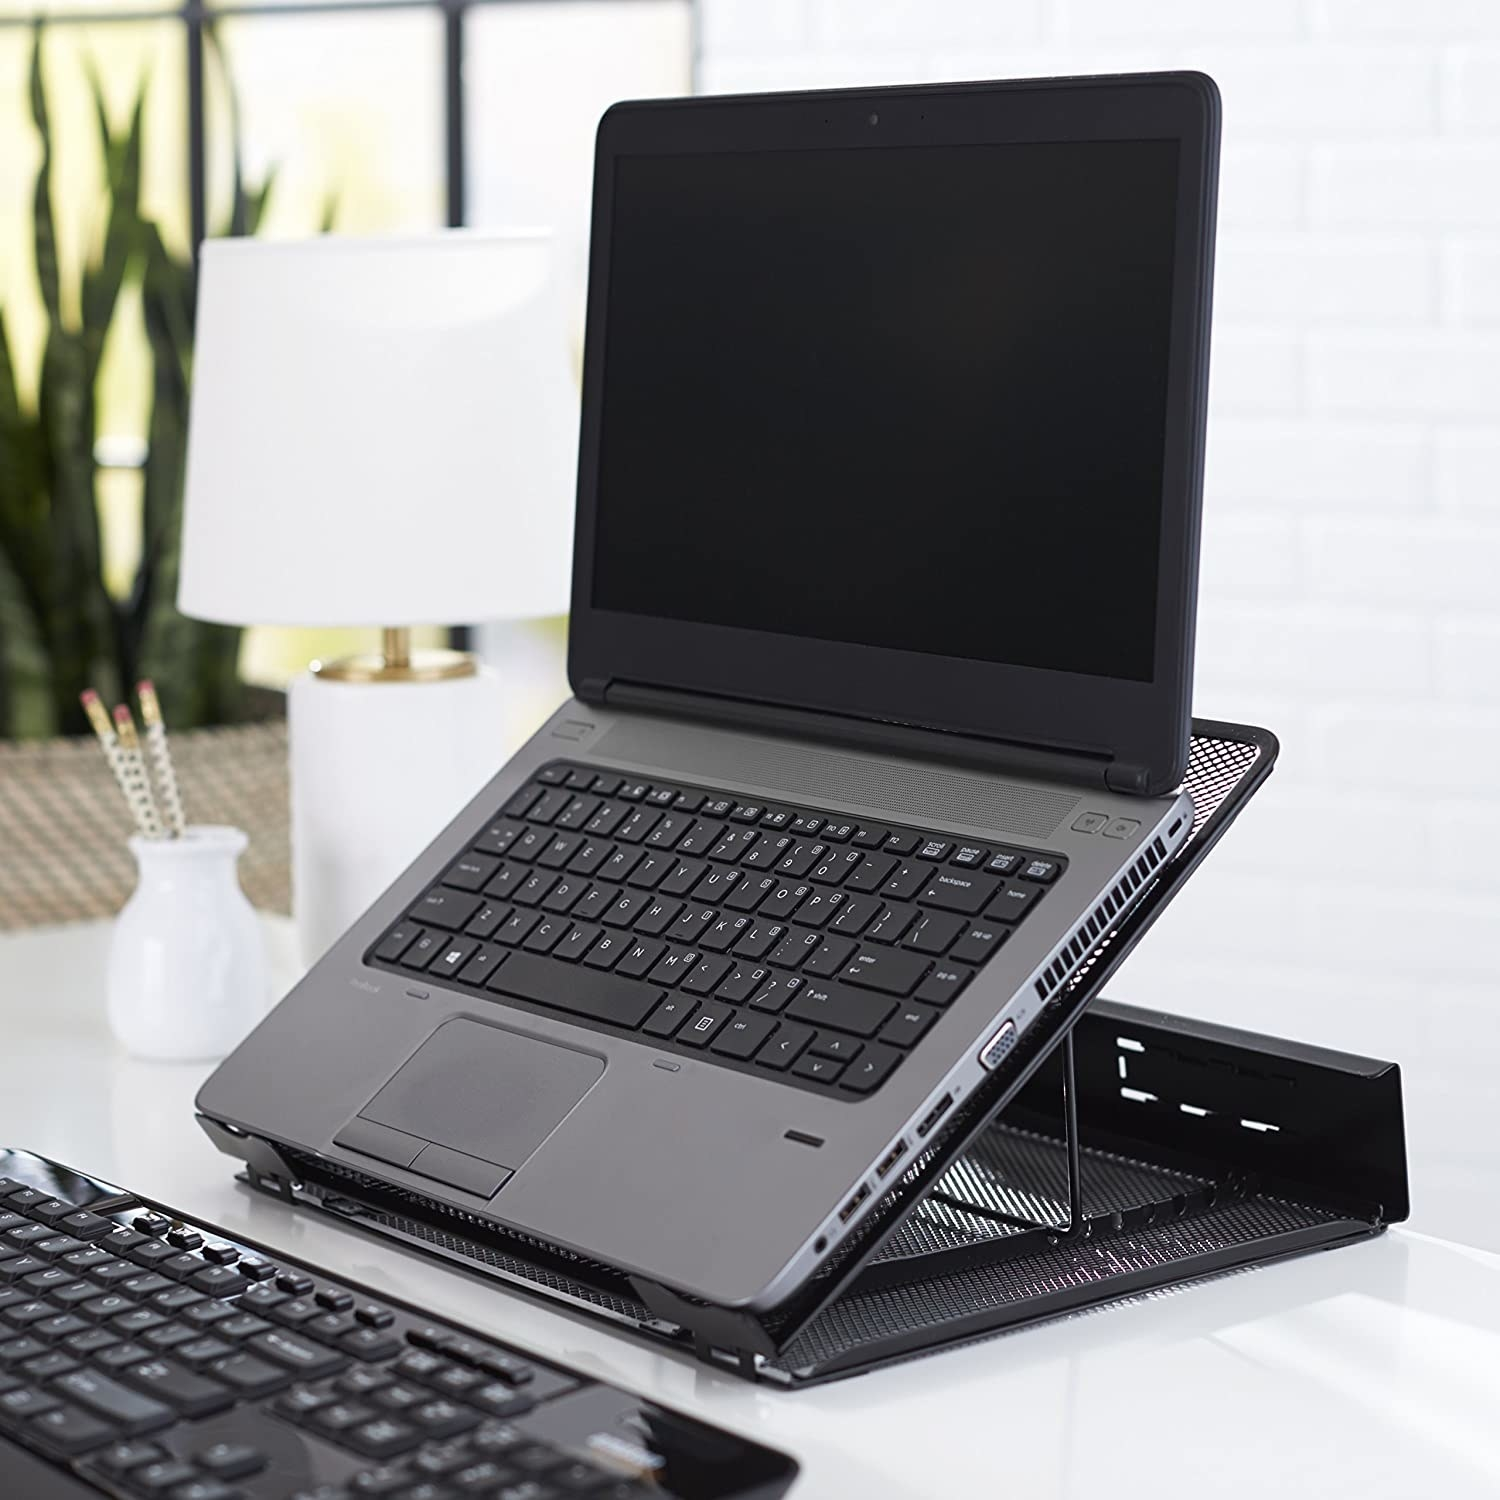 An angled laptop on the laptop stand